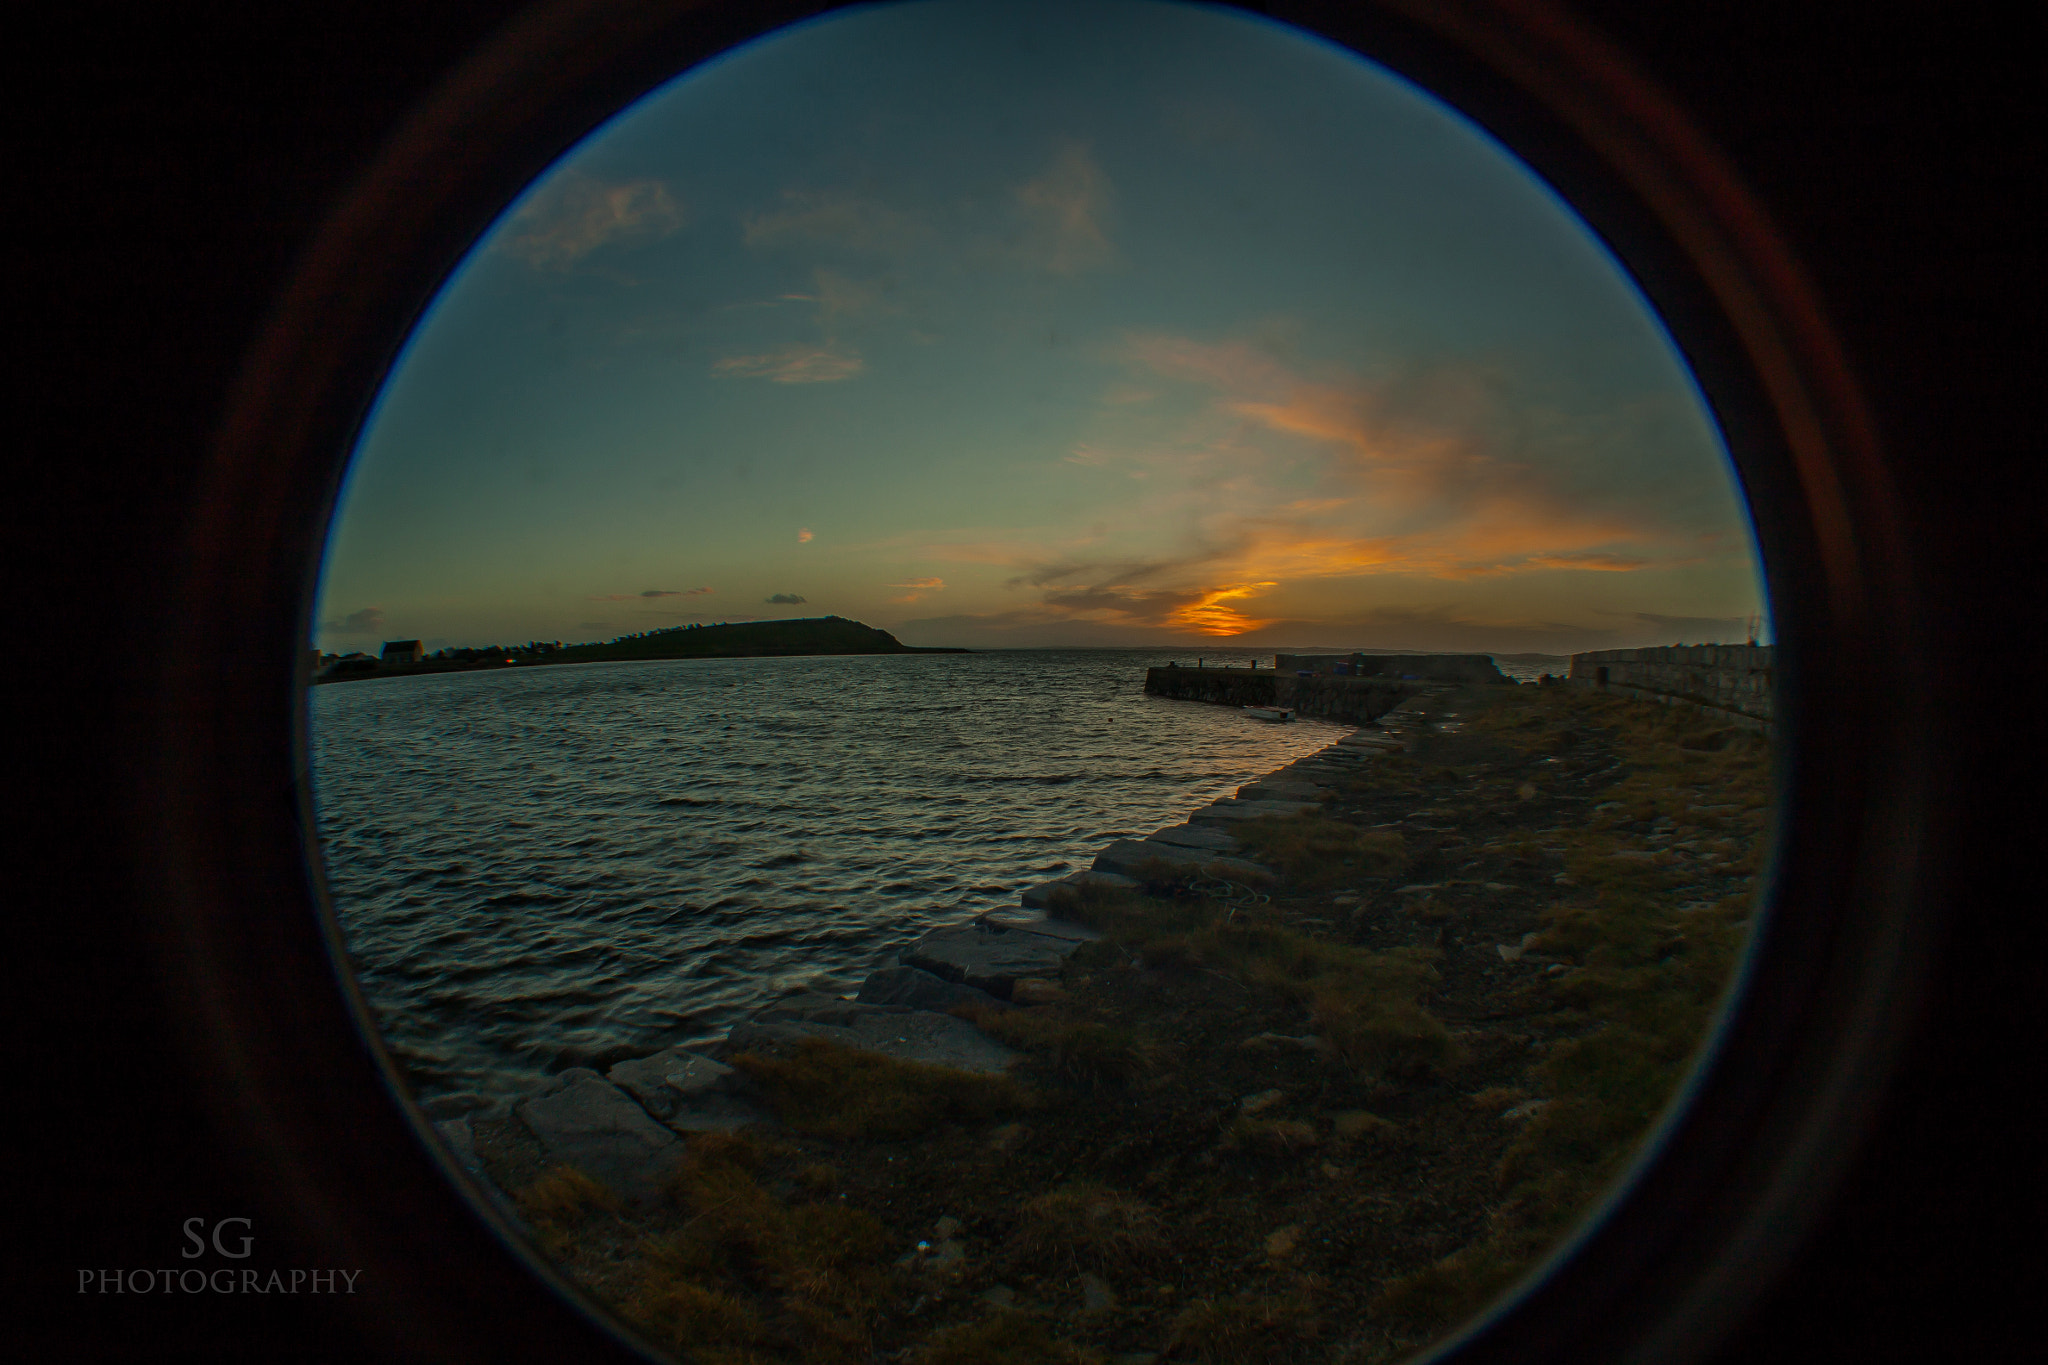 Photograph Through the Porthole by Sumo Gray on 500px